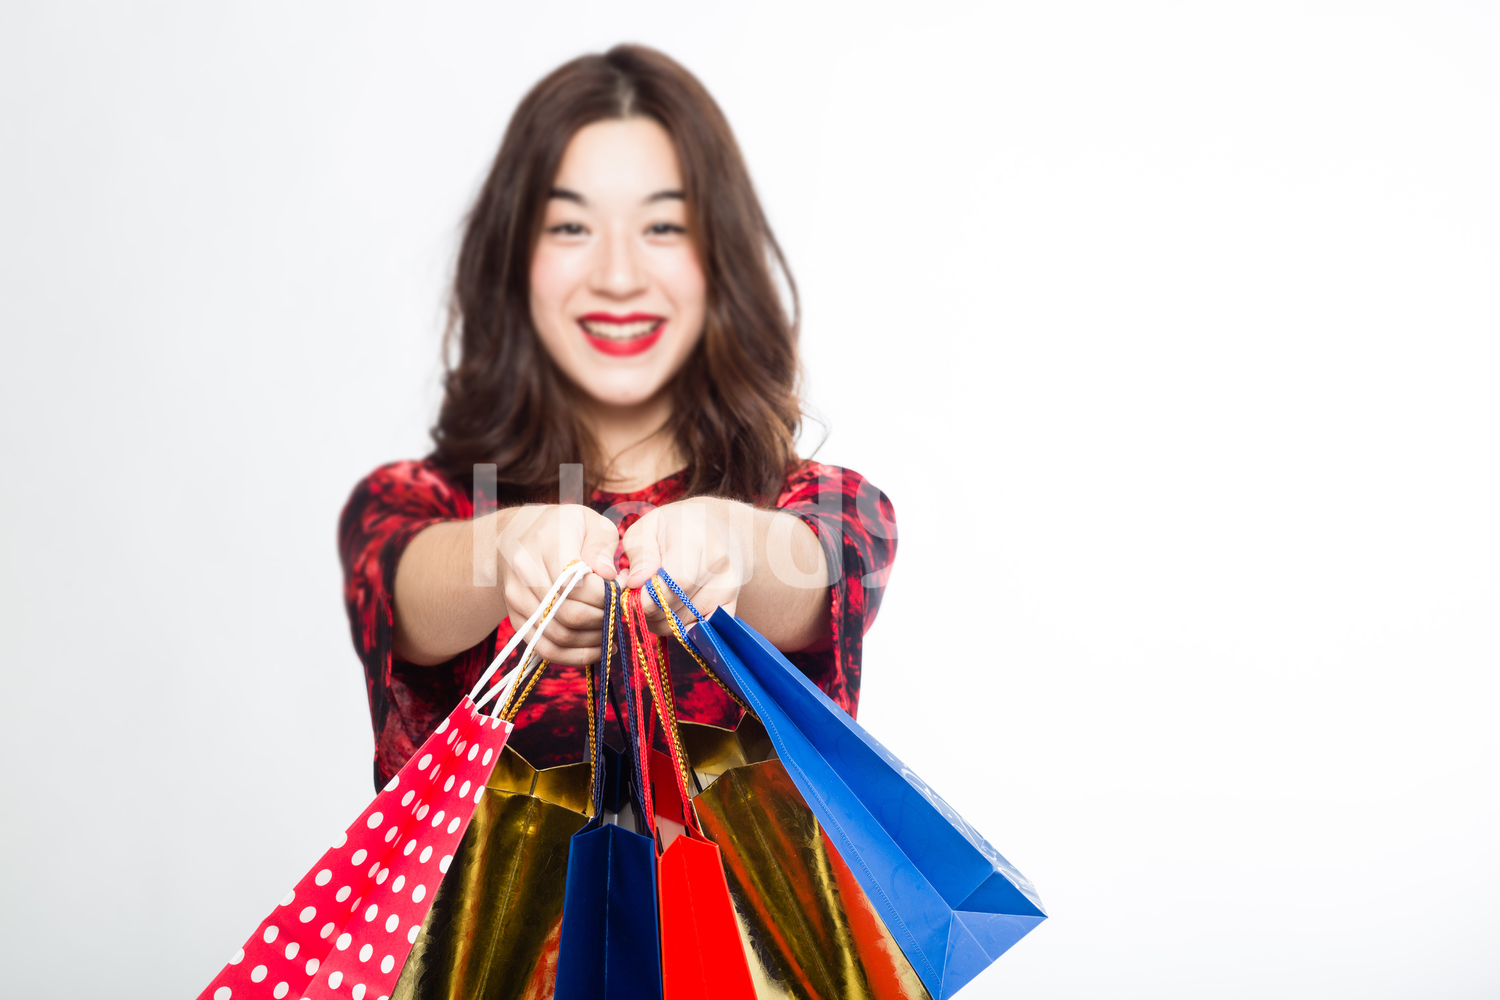 Eurasian Woman with her Shopping Bags